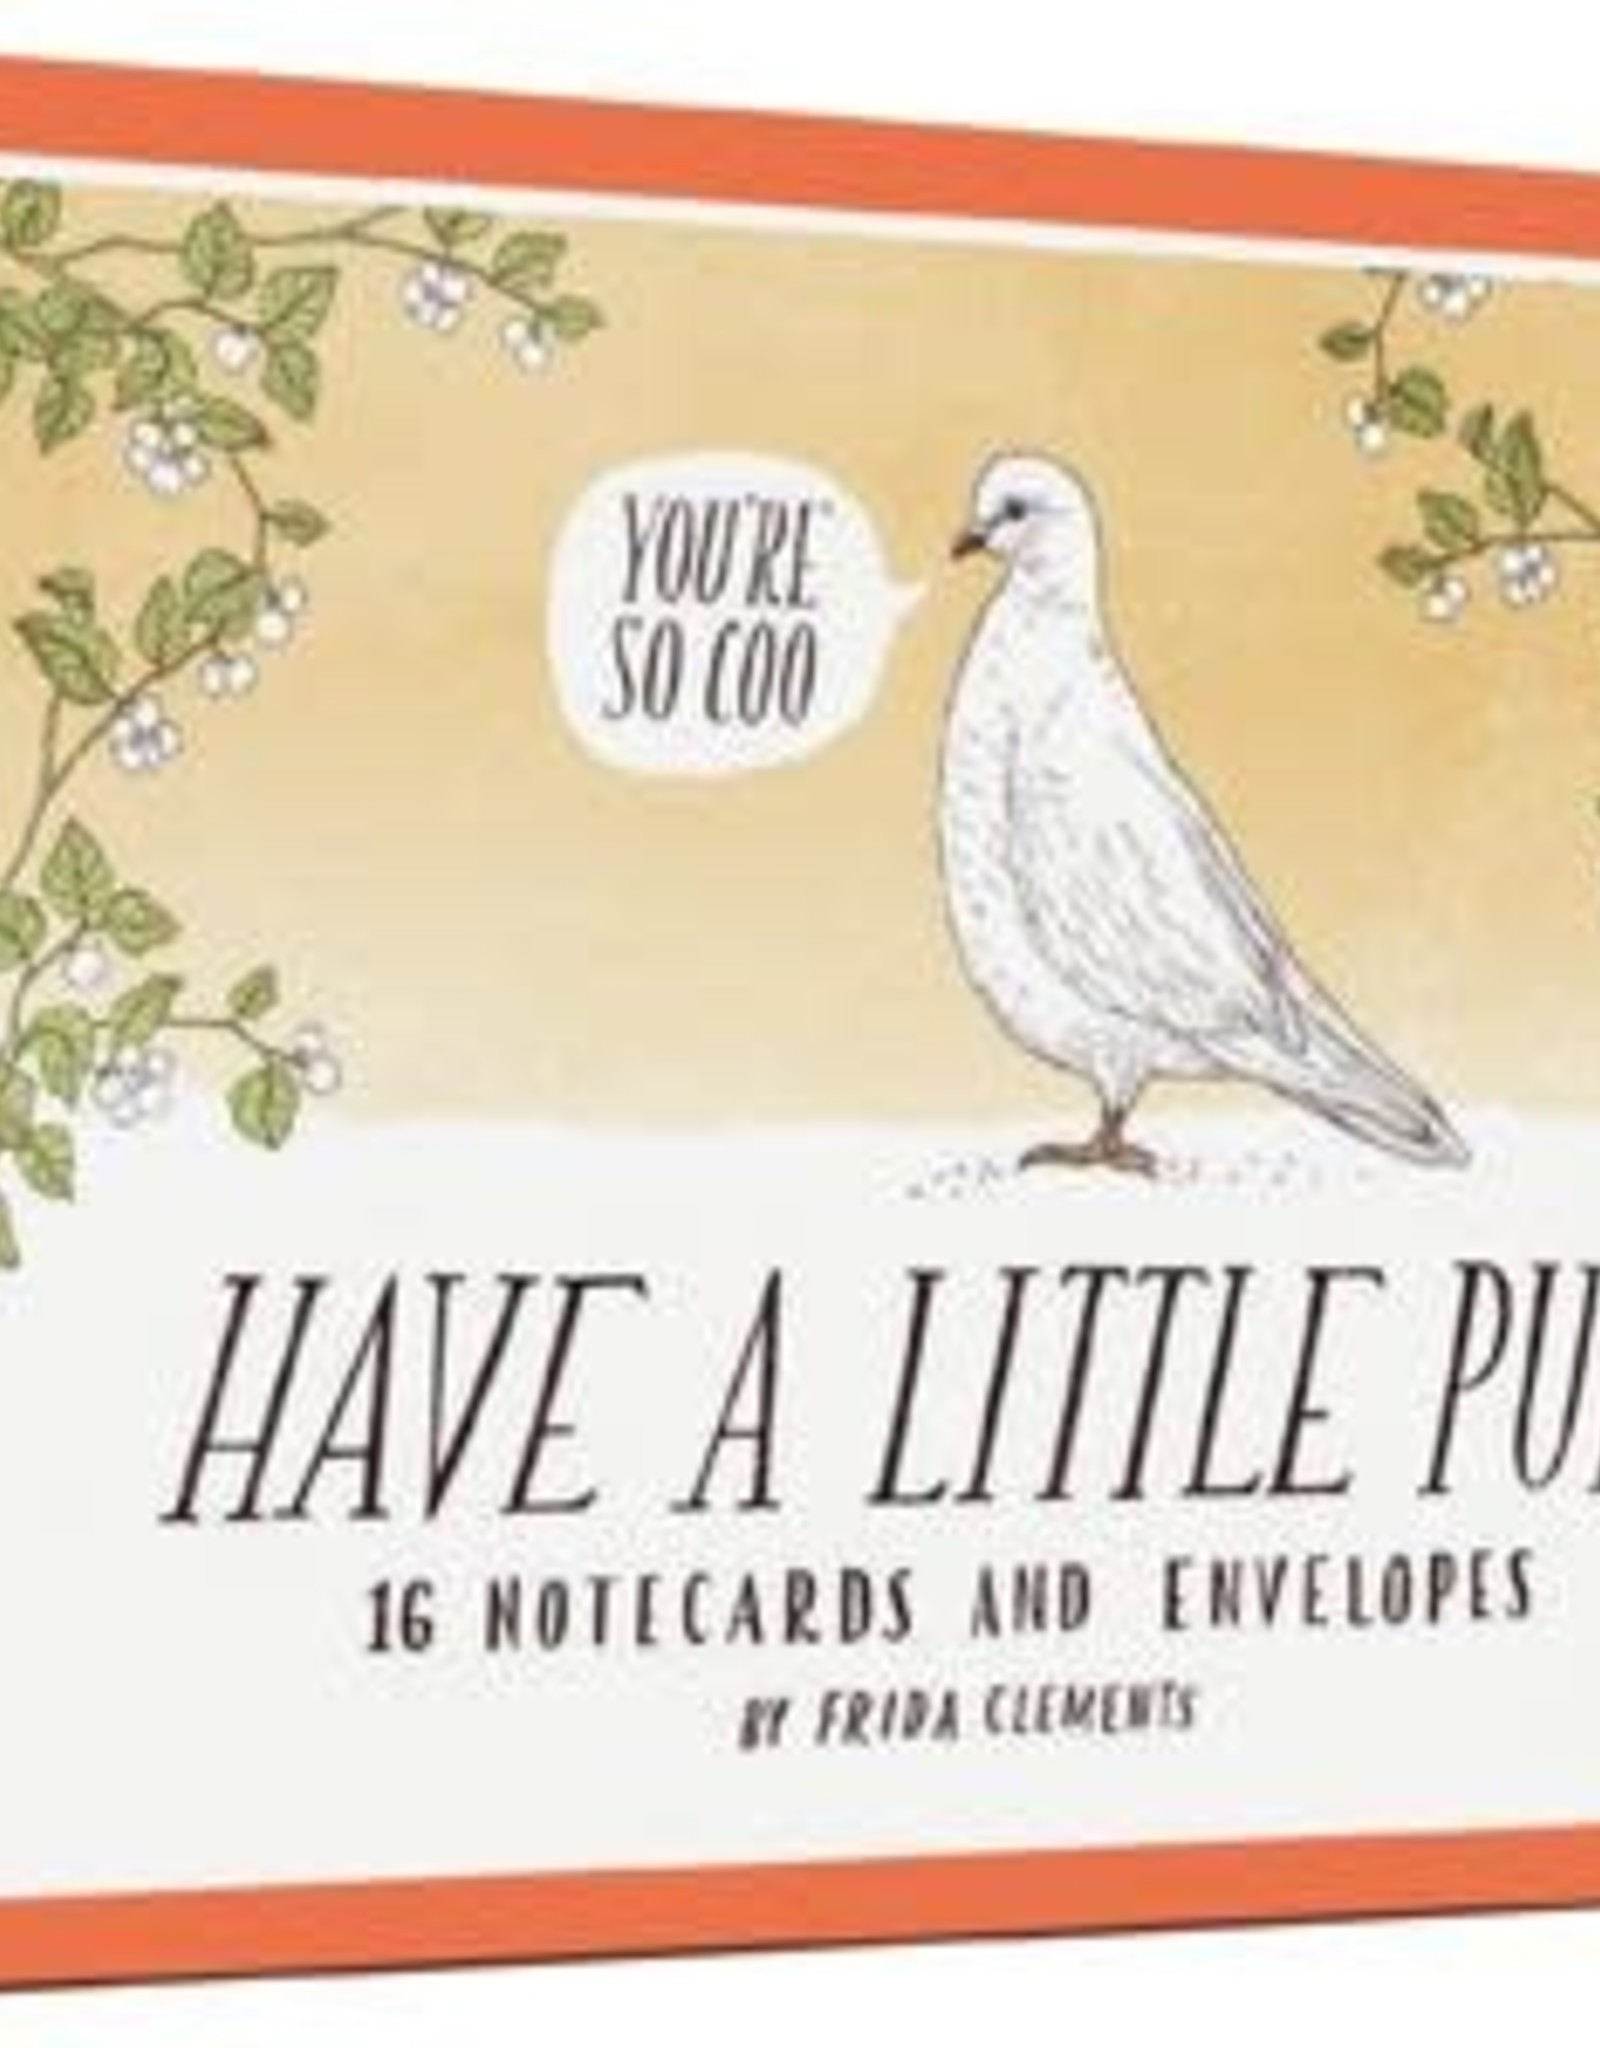 Have A Little Pun Notecards by Frida Clements